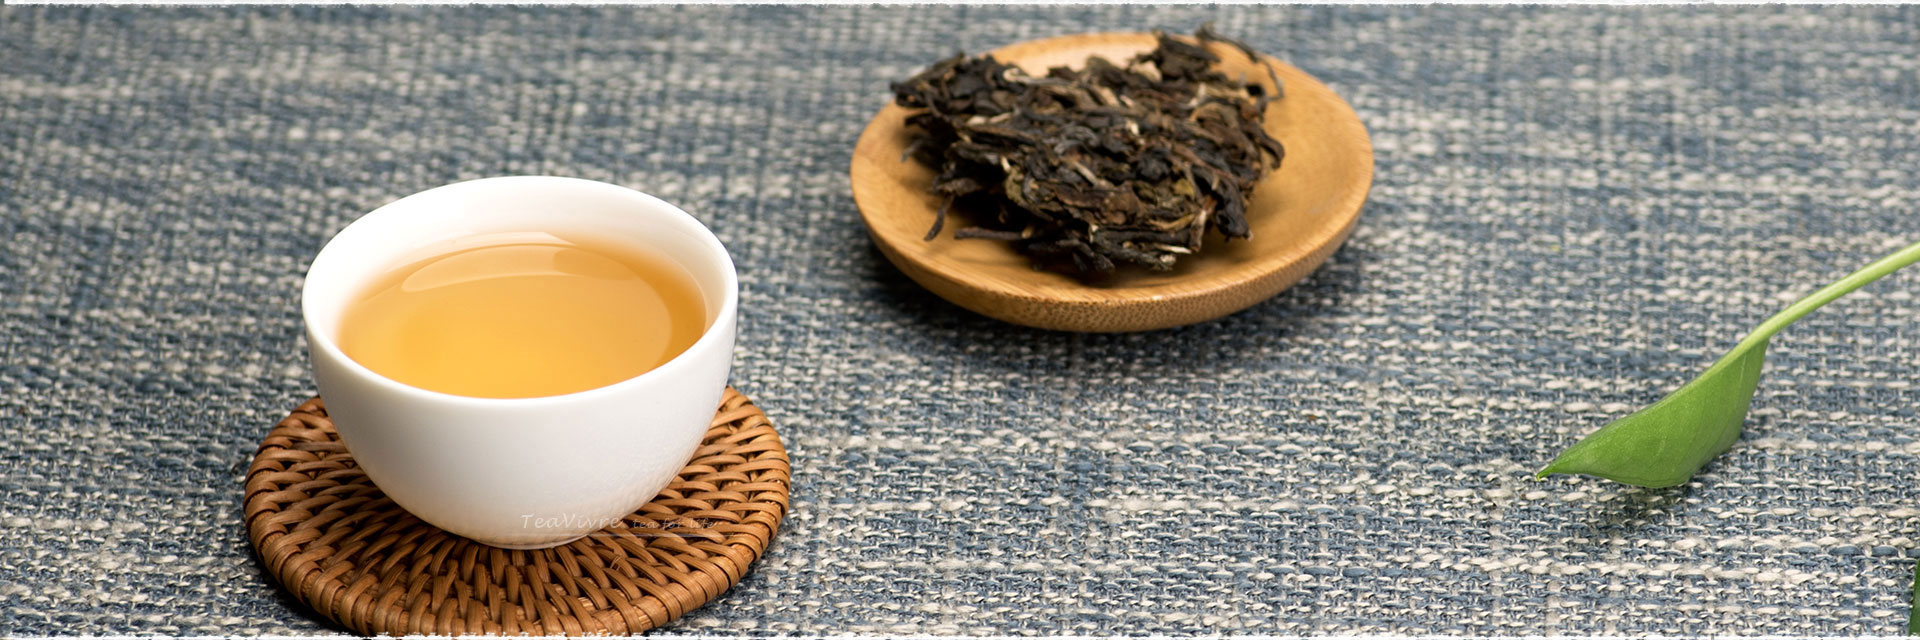 Pu-erh tea: everything you need to know before drinking 40